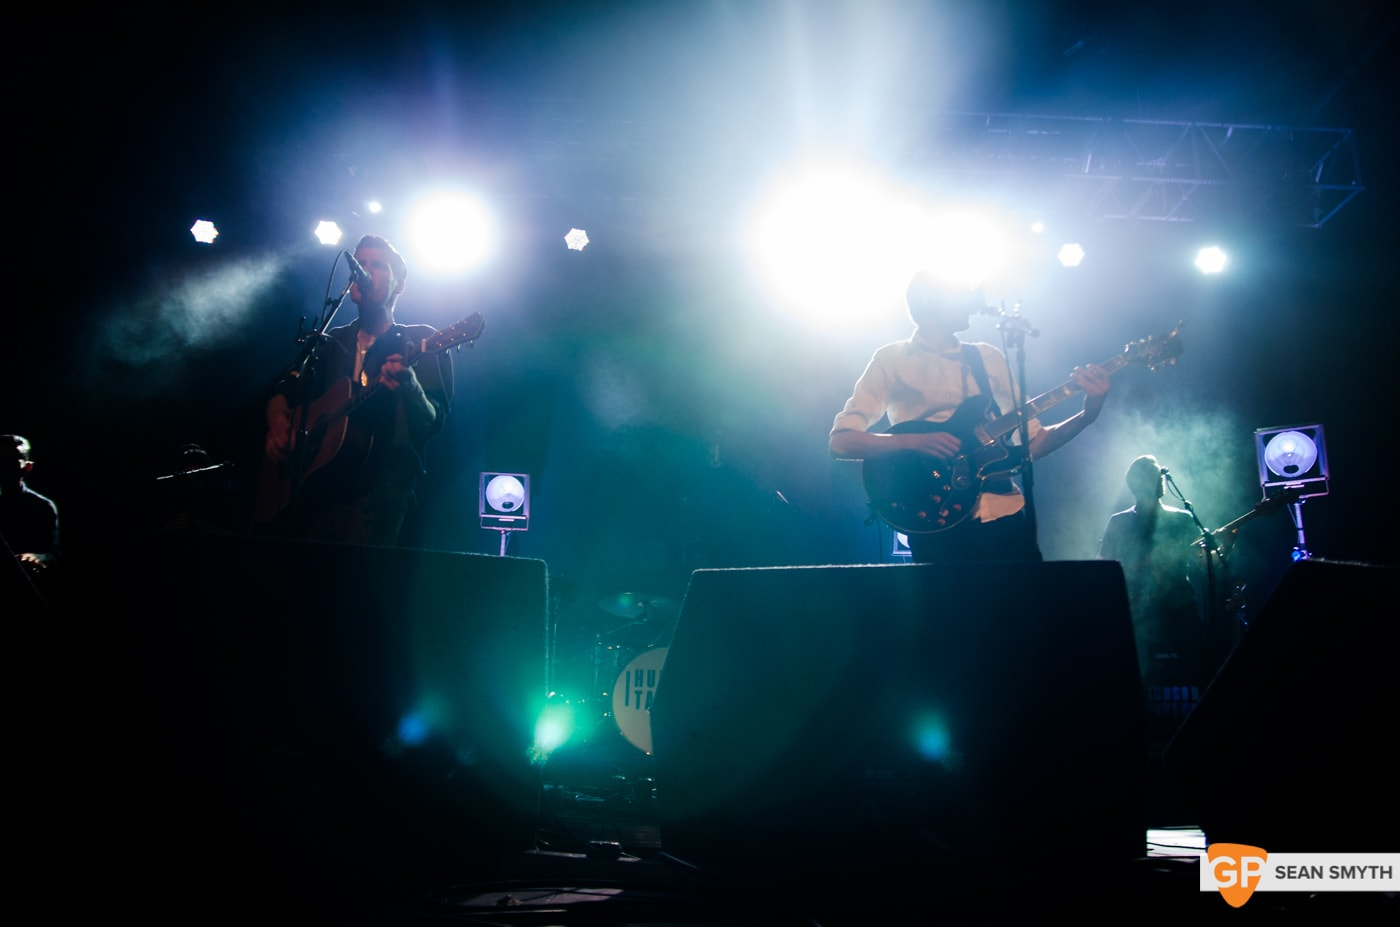 hudson-taylor-at-the-olympia-theatre-26-2-15-by-sean-smyth-3-of-26_16134455284_o